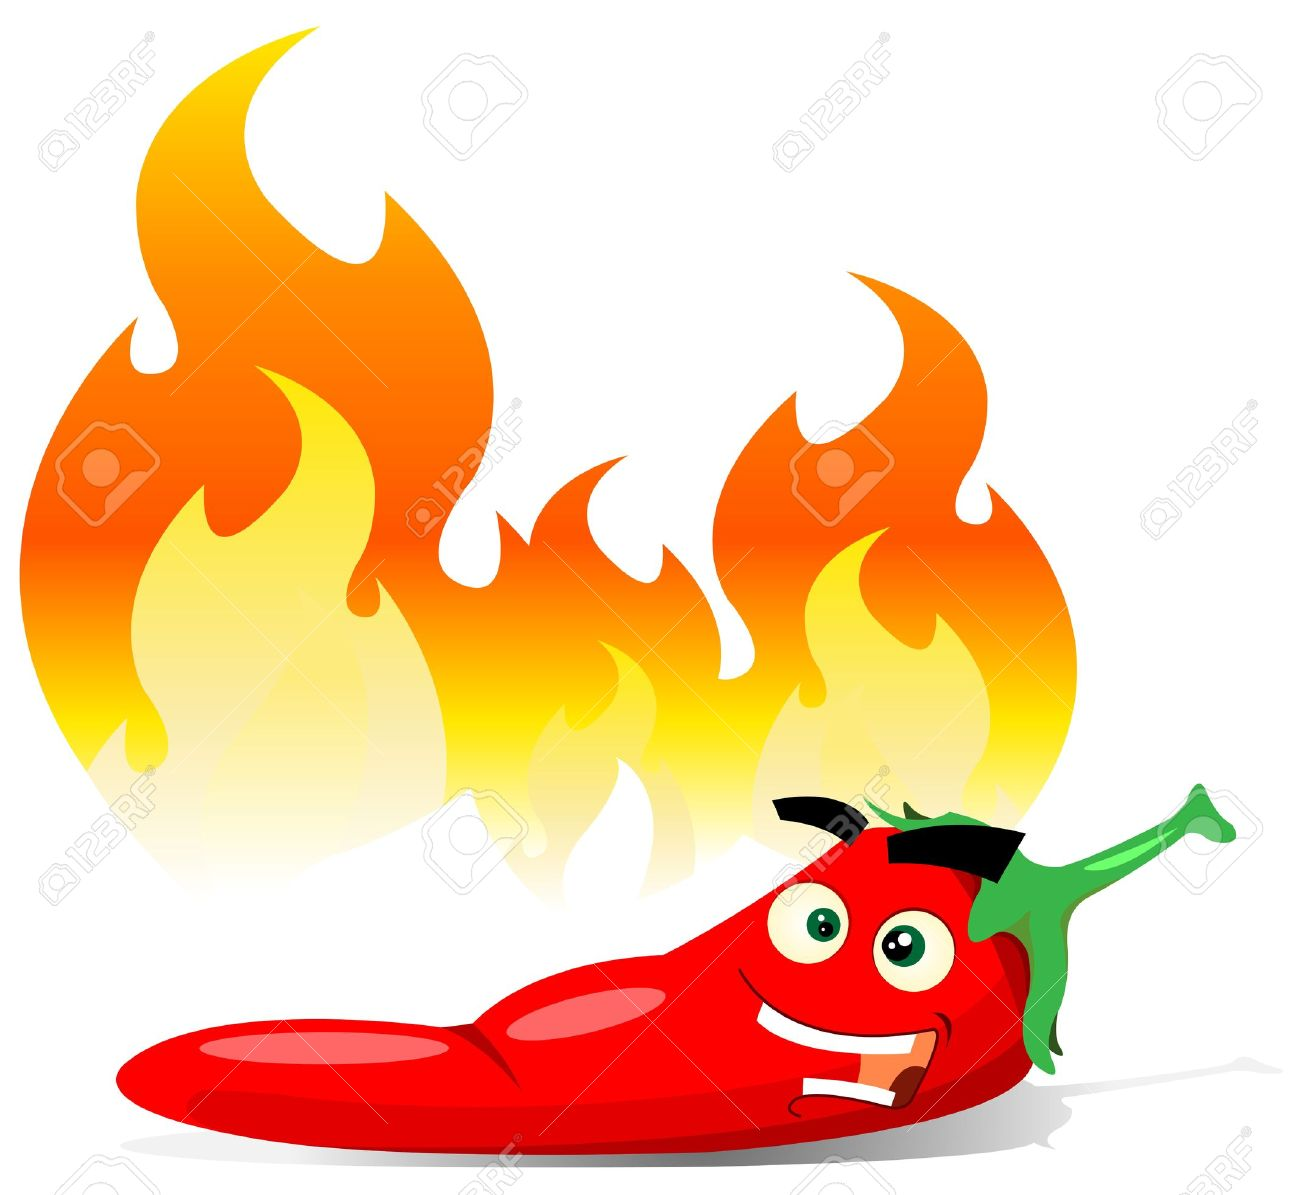 hot peppers clipart clipground pepper clip art how hot pepper clipart for cinco de mayo